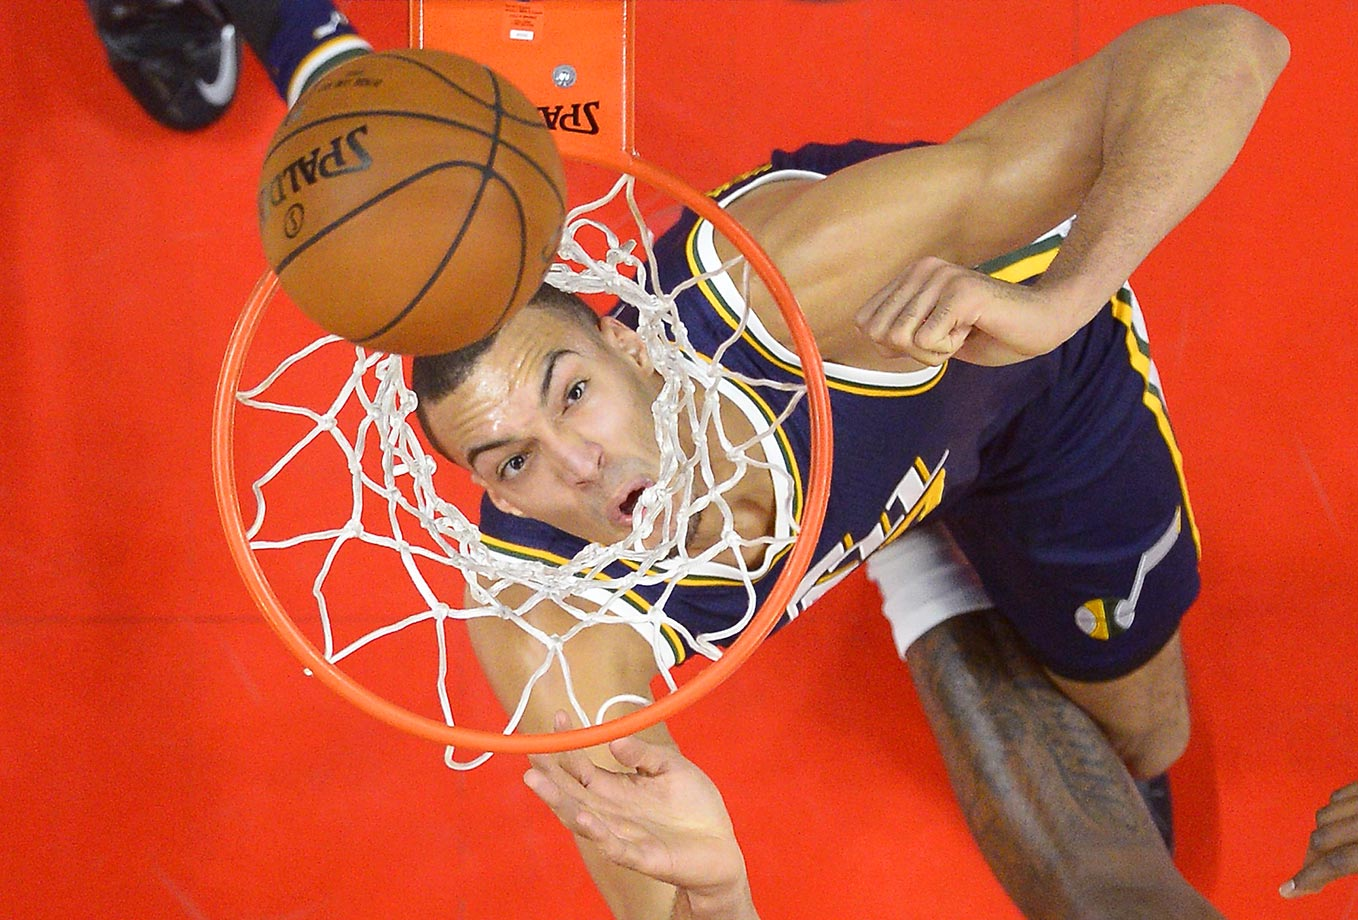 Rudy Gobert of the Utah Jazz watches a basket through the net in a game against the Los Angeles Clippers.